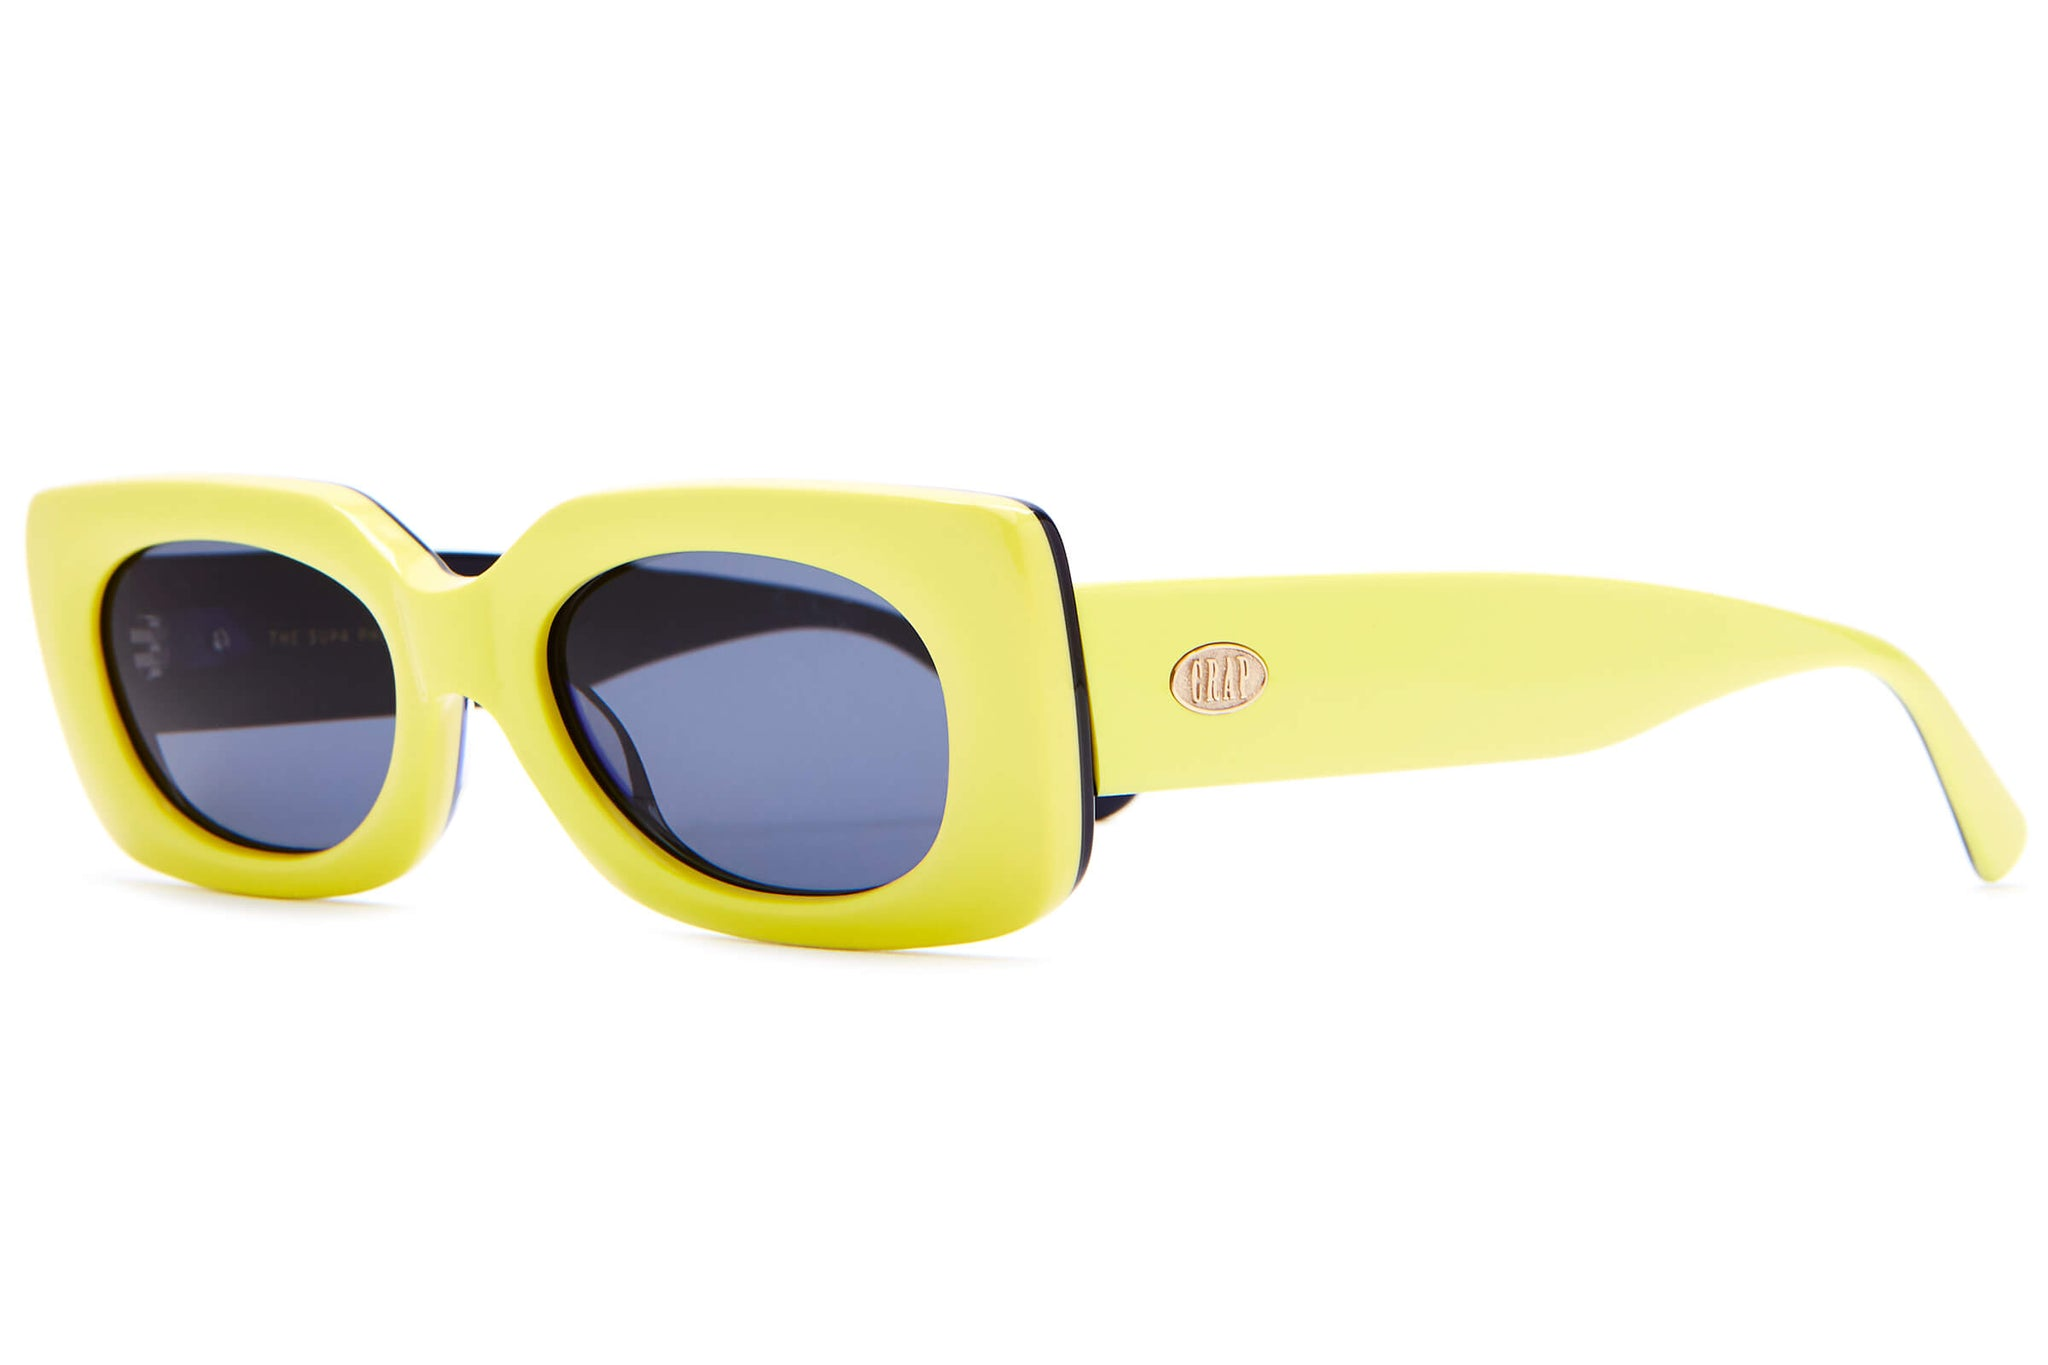 The Supa Phreek - Emma Chamberlain Neon Yellow